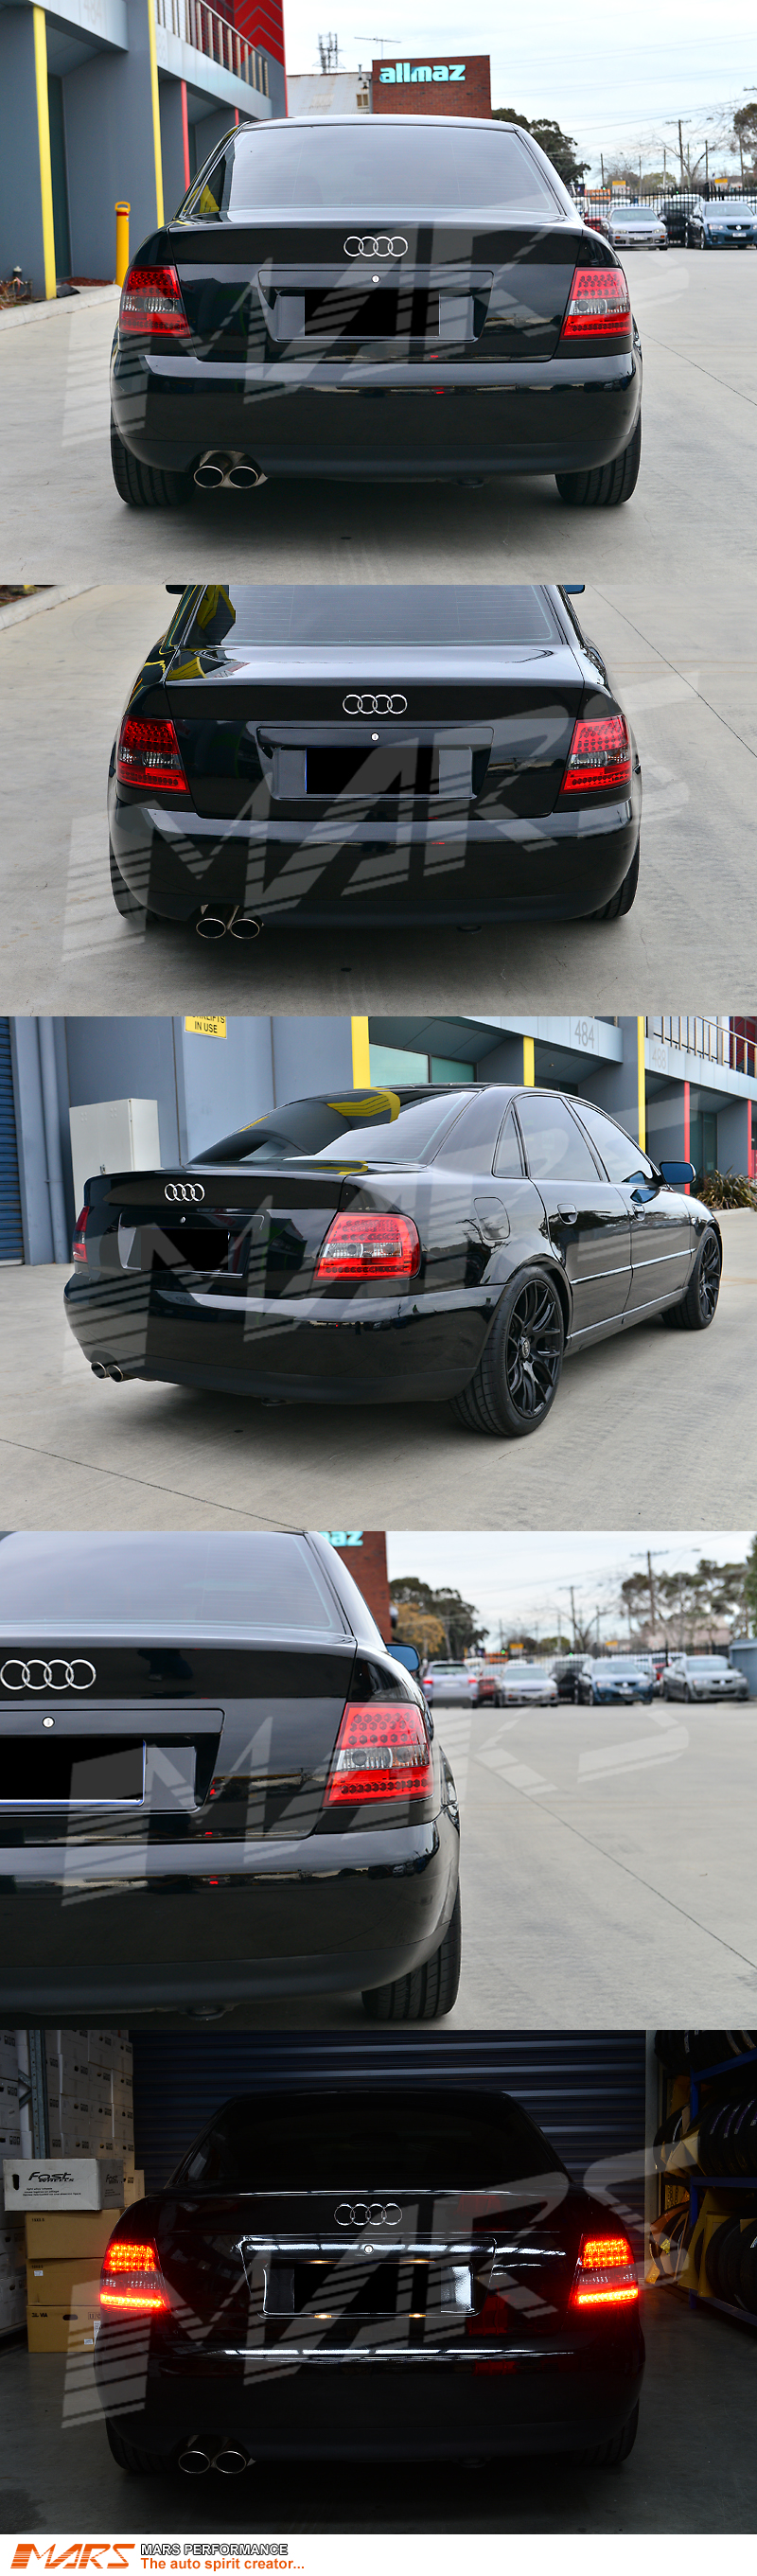 smoked red led taillight tail lights for audi a4 s4 b5 4 doors sedan 95 98 99 01 ebay. Black Bedroom Furniture Sets. Home Design Ideas